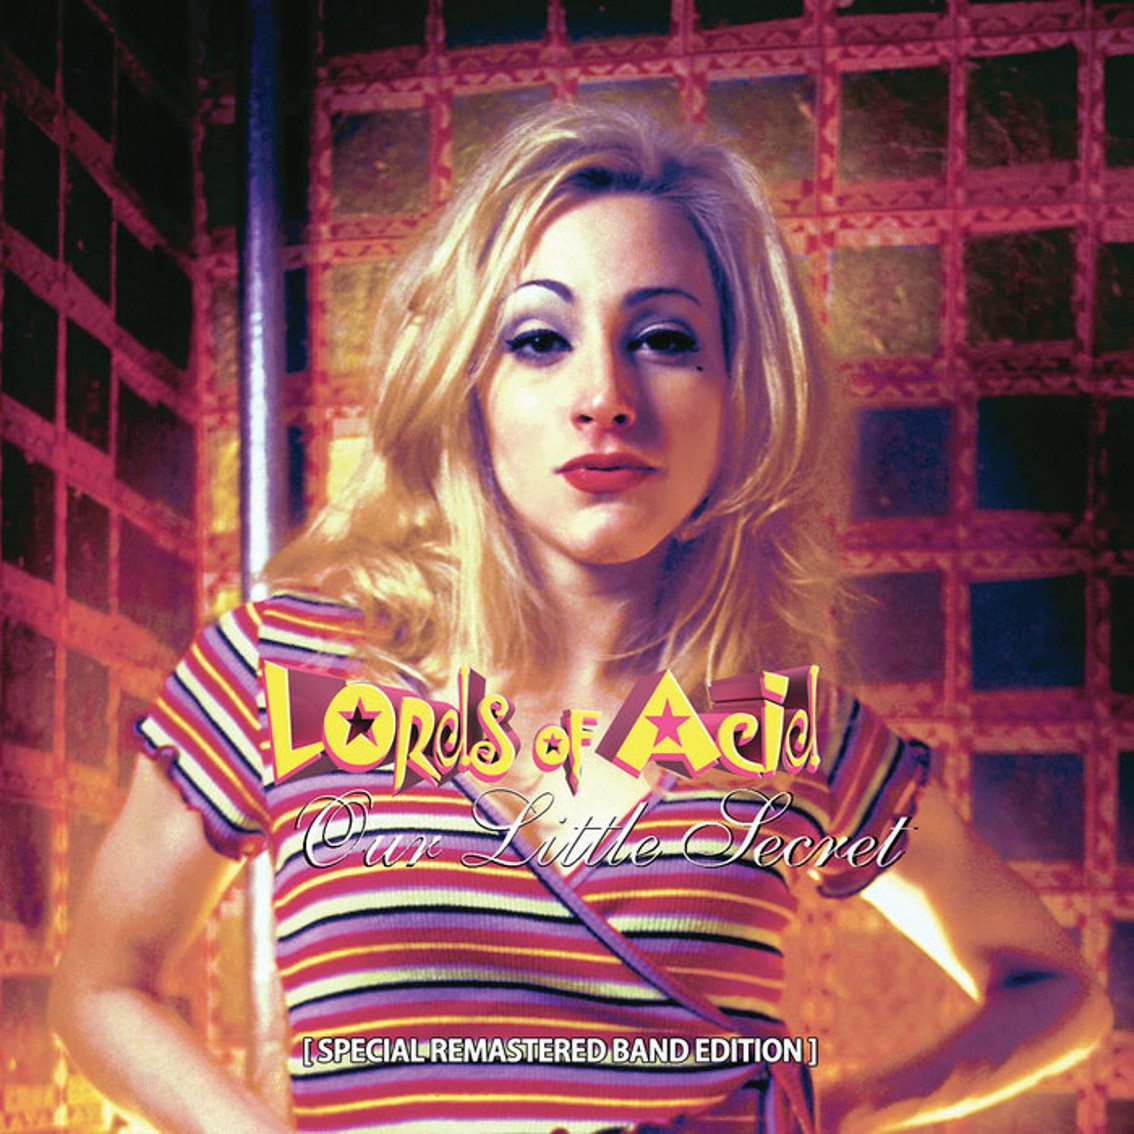 2 new Lords Of Acid reissues: 'Our little secret' and 'Farstucker' - special remastered band editions also available on double vinyl